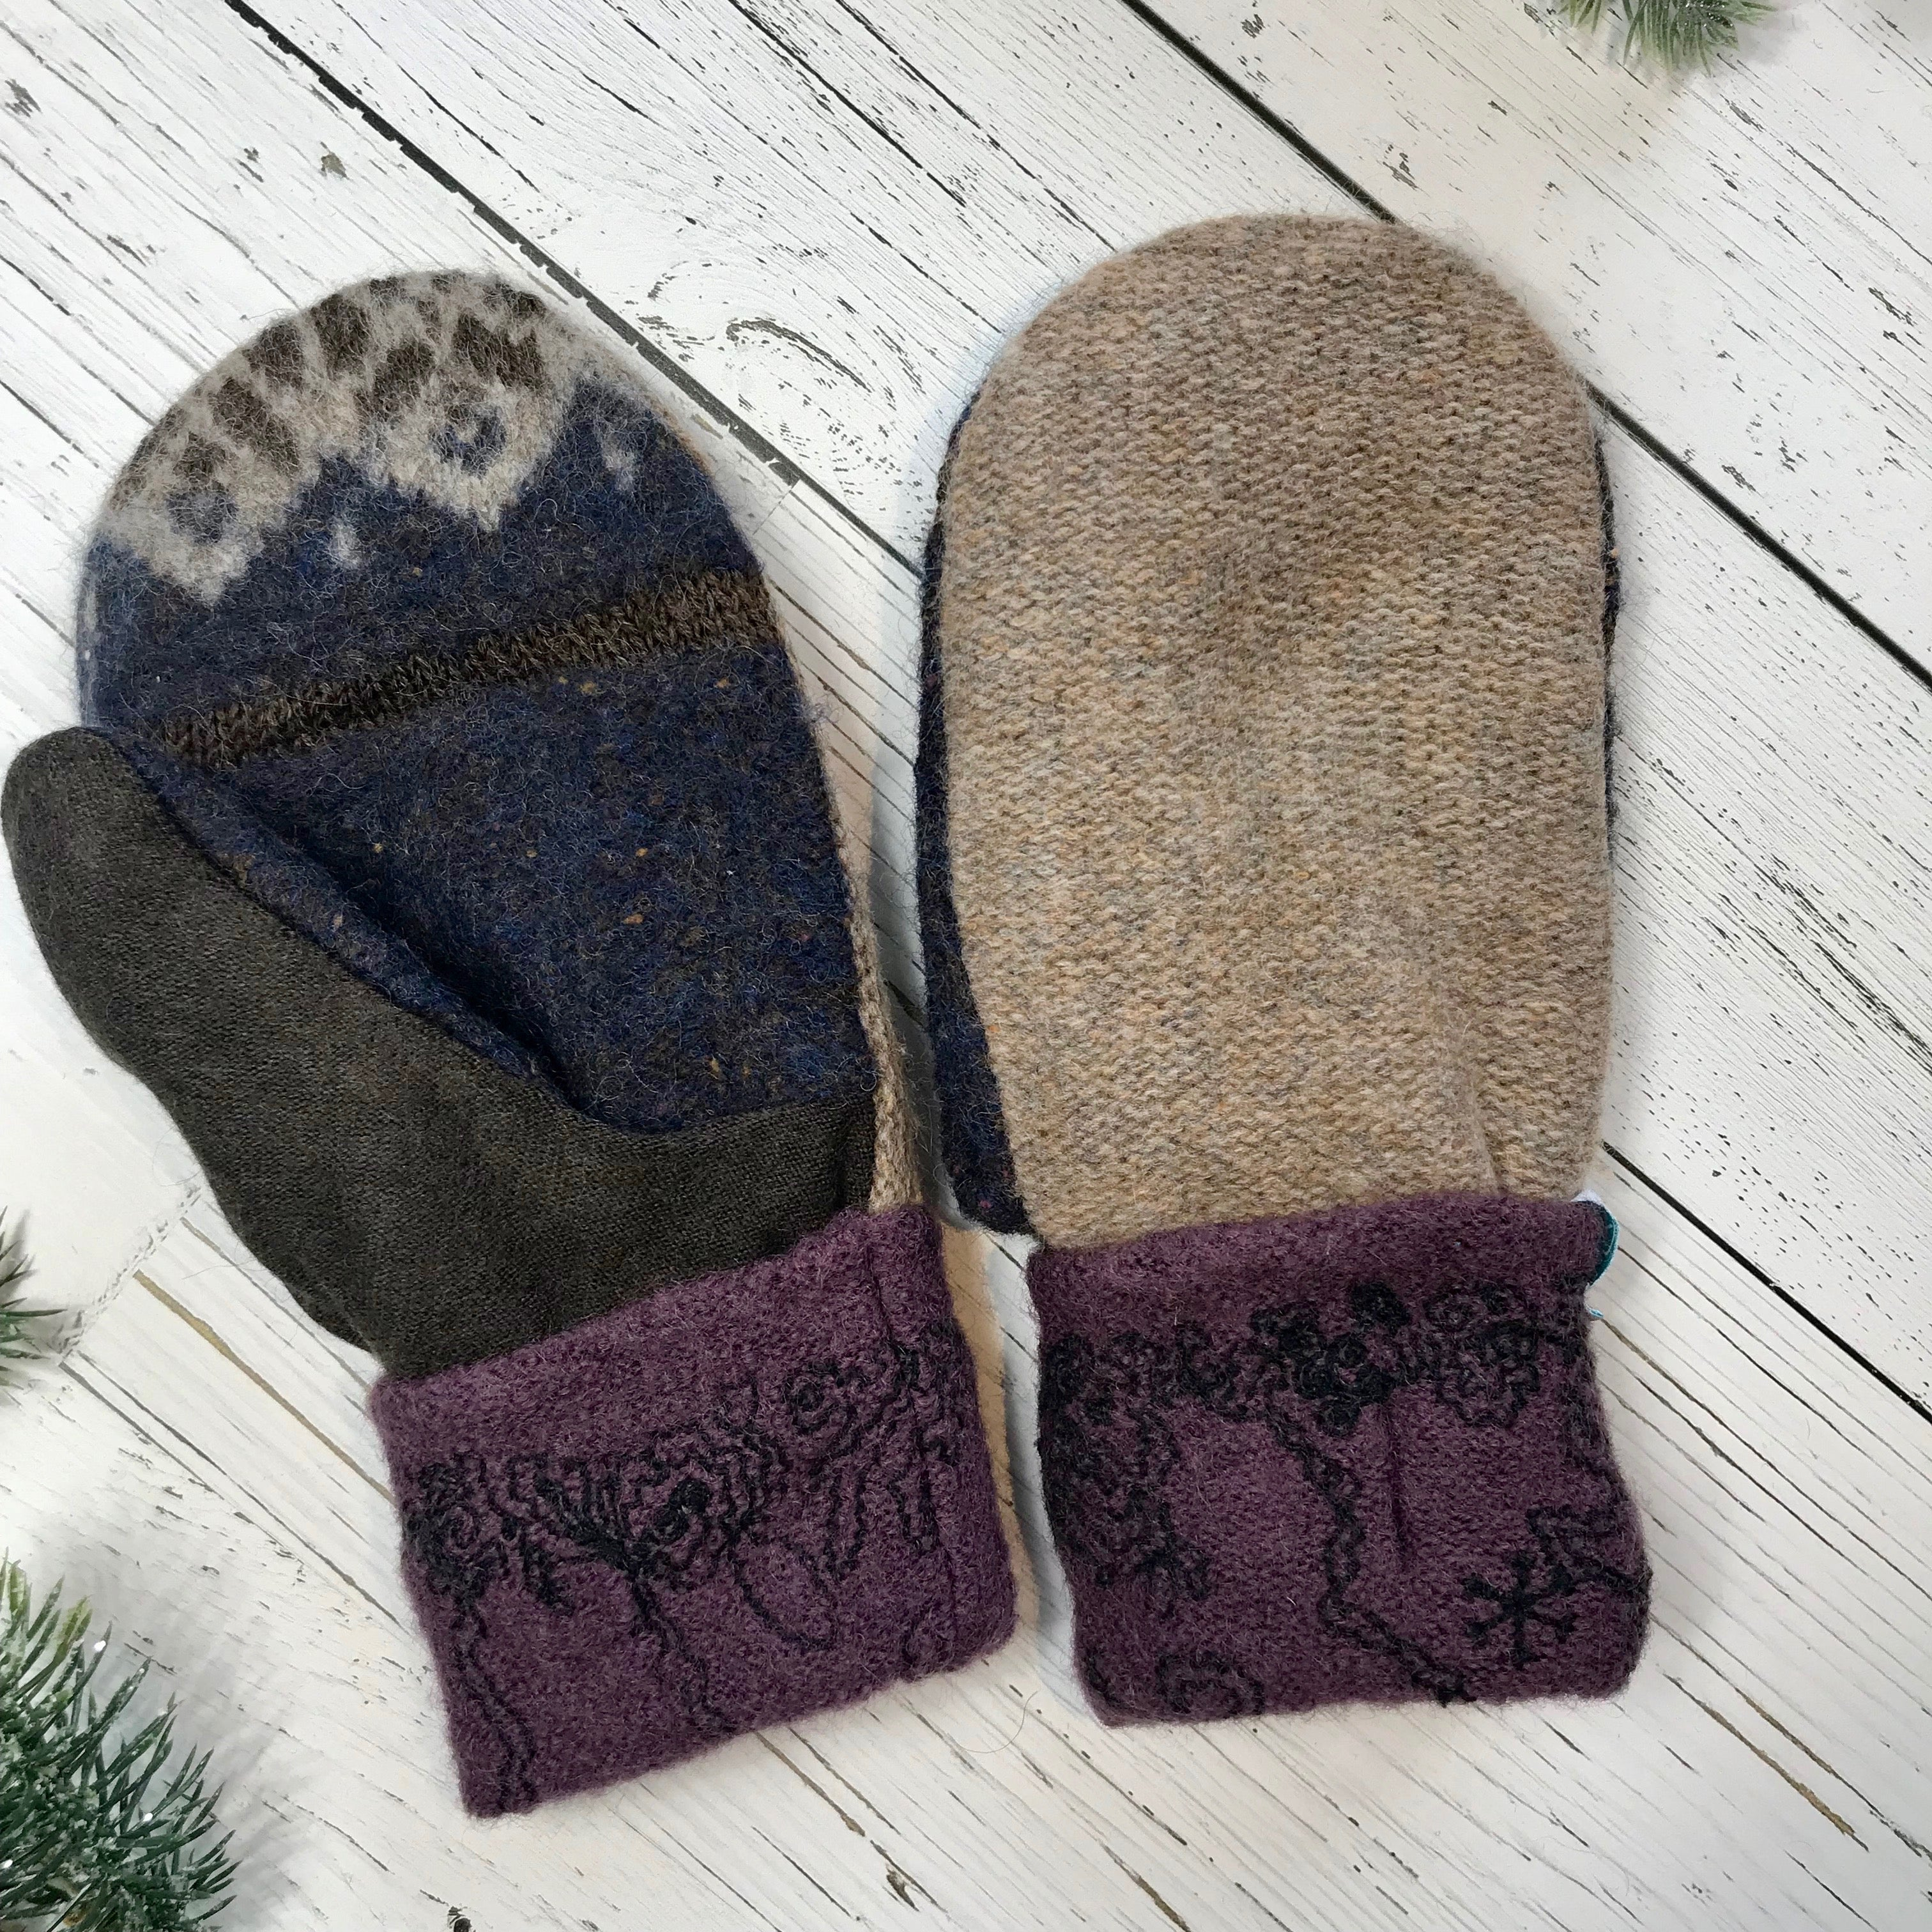 recycled wool mitts heathered brown, navy speckle, brown, purple black embroidered cuffs